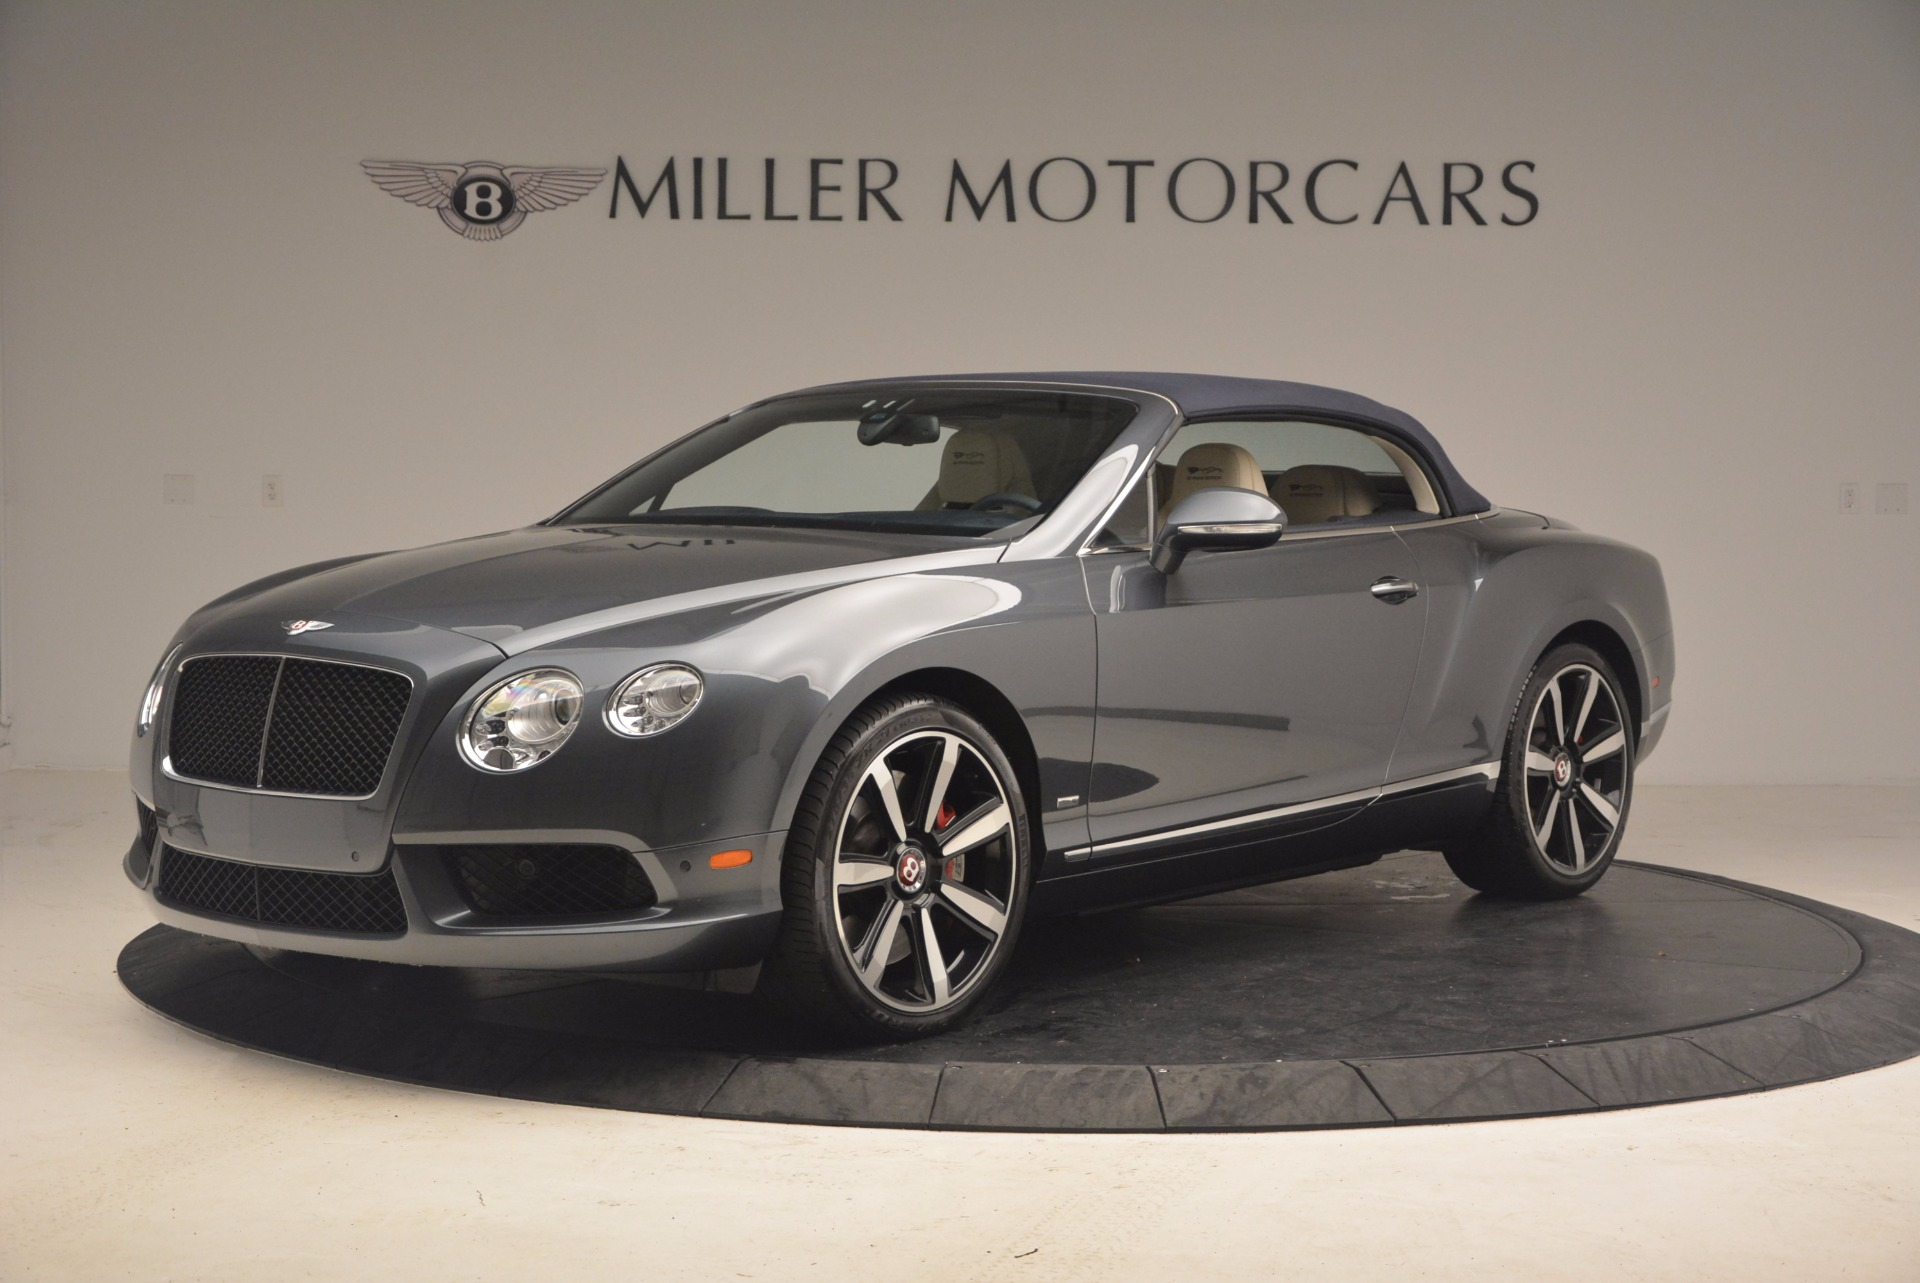 Used 2013 Bentley Continental GT V8 Le Mans Edition, 1 of 48 For Sale In Westport, CT 1288_p15